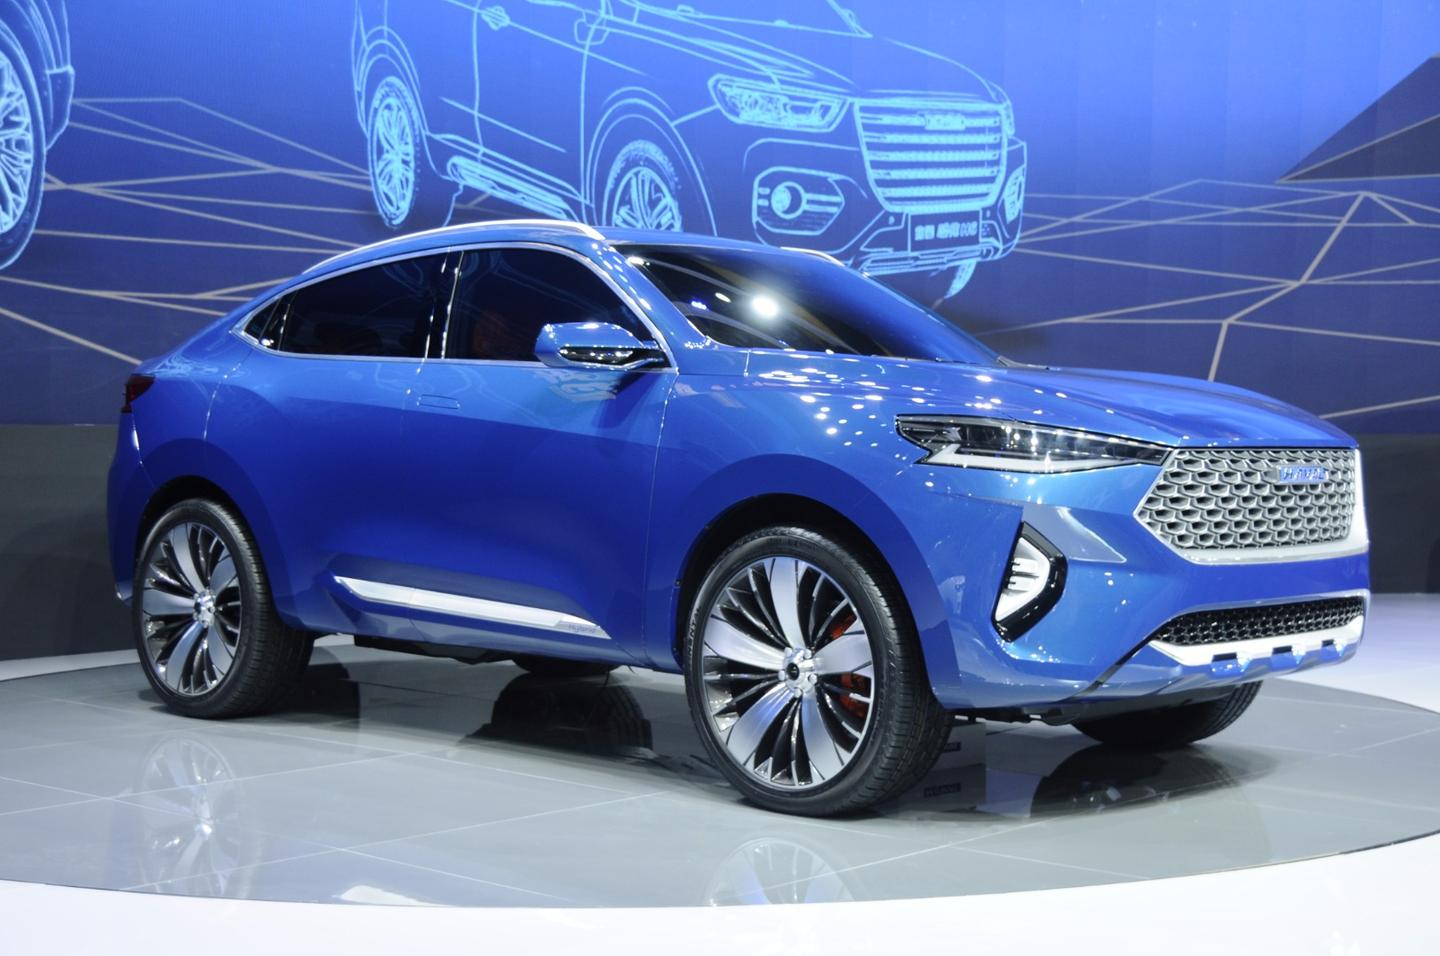 TheHaval HB-03 concept is a bit derivative in its styling